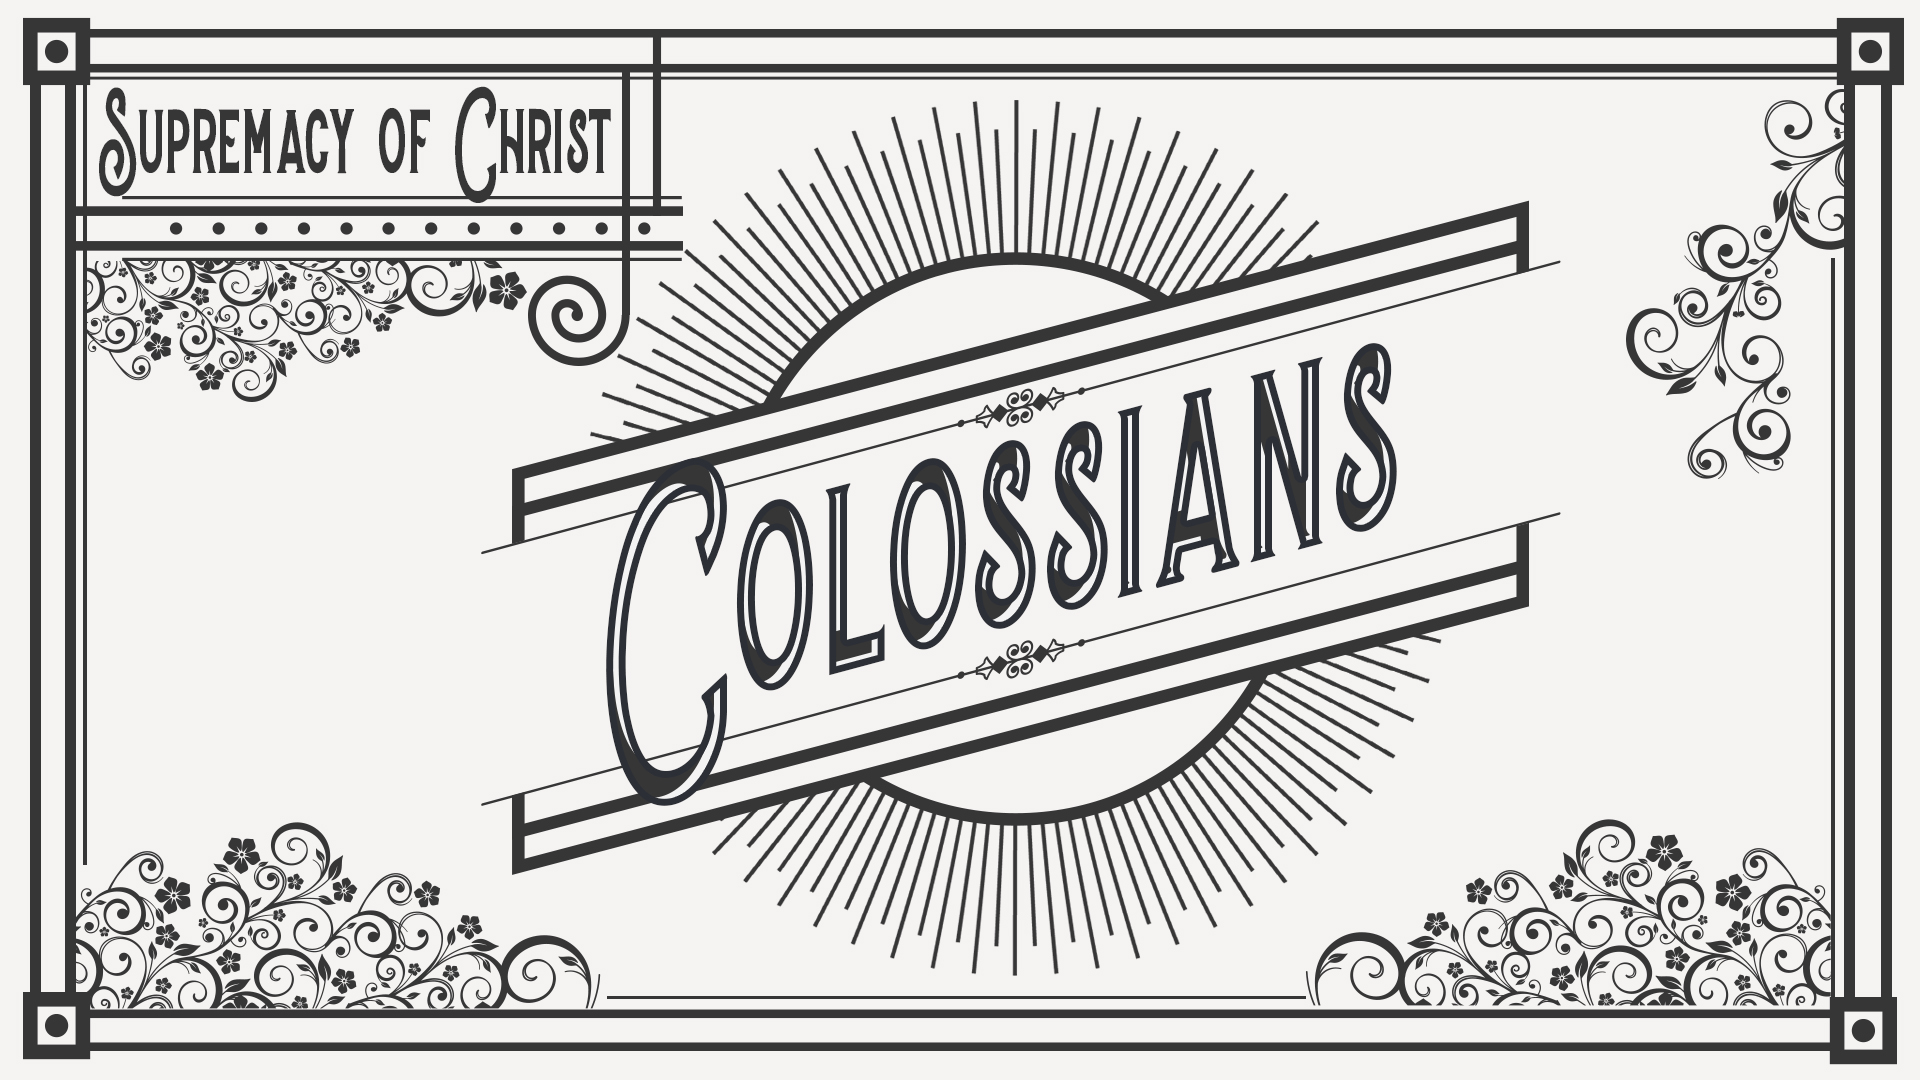 Colossians cover.jpg